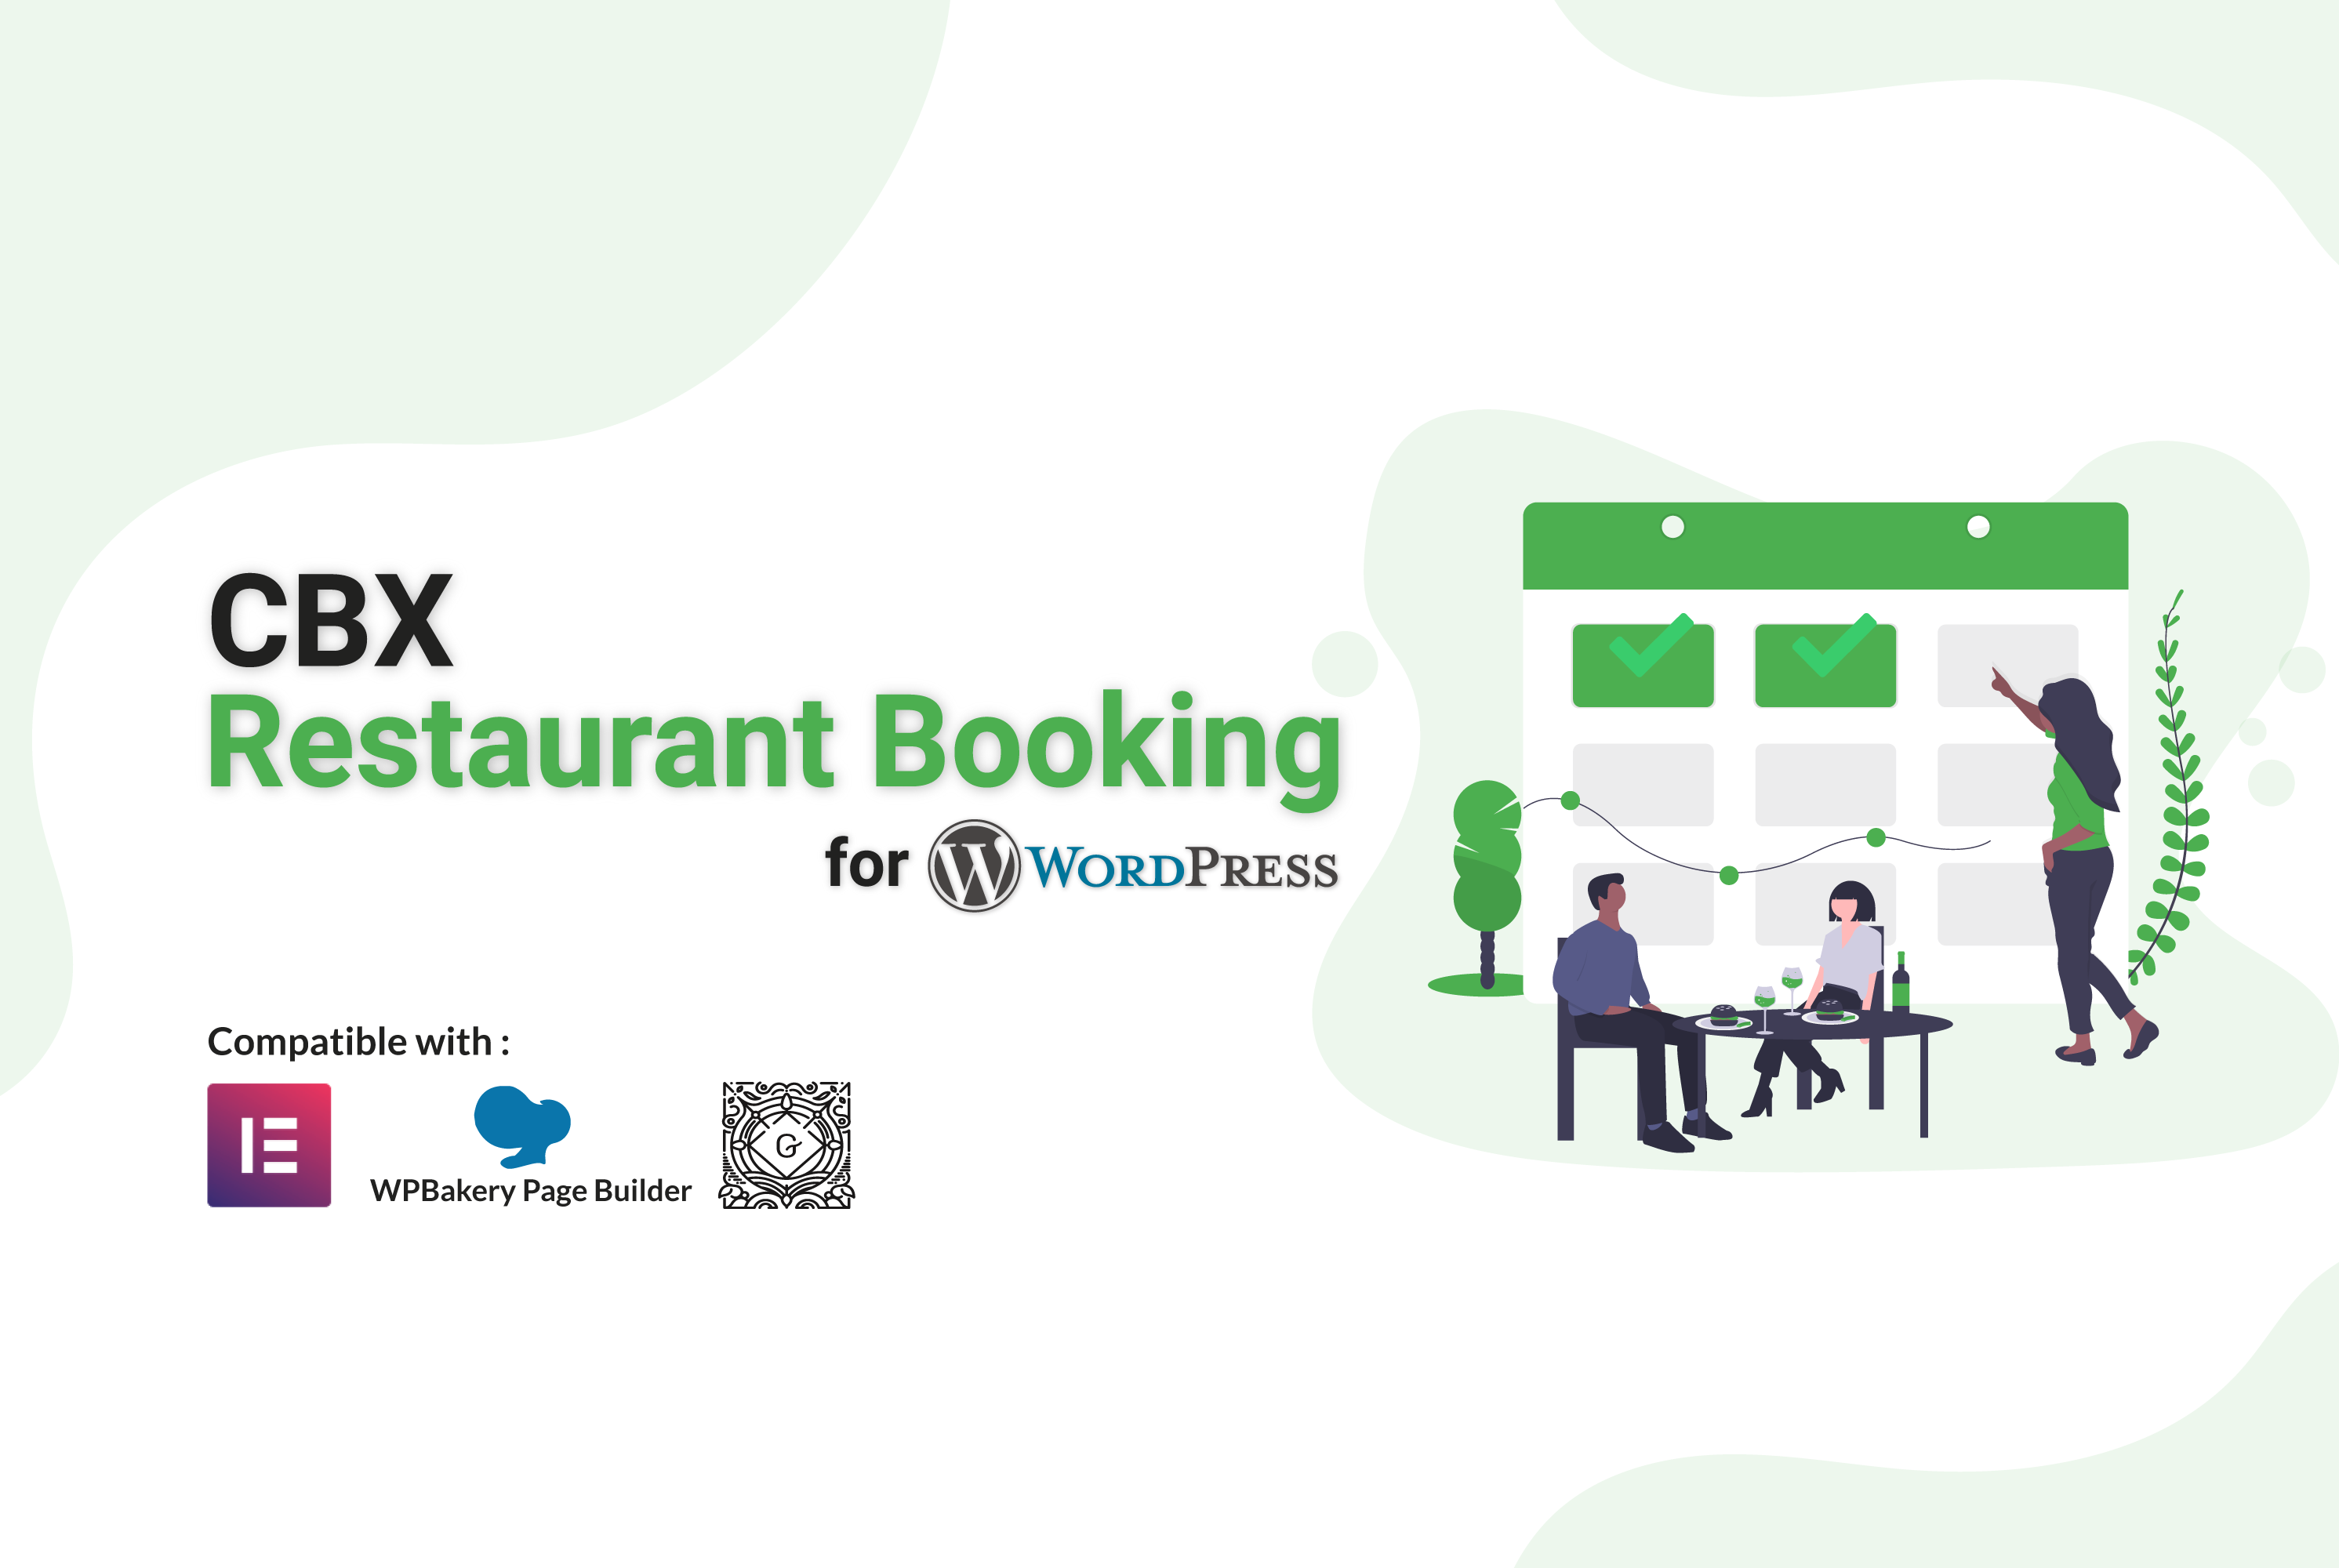 CBX Restaurant Booking for WordPress